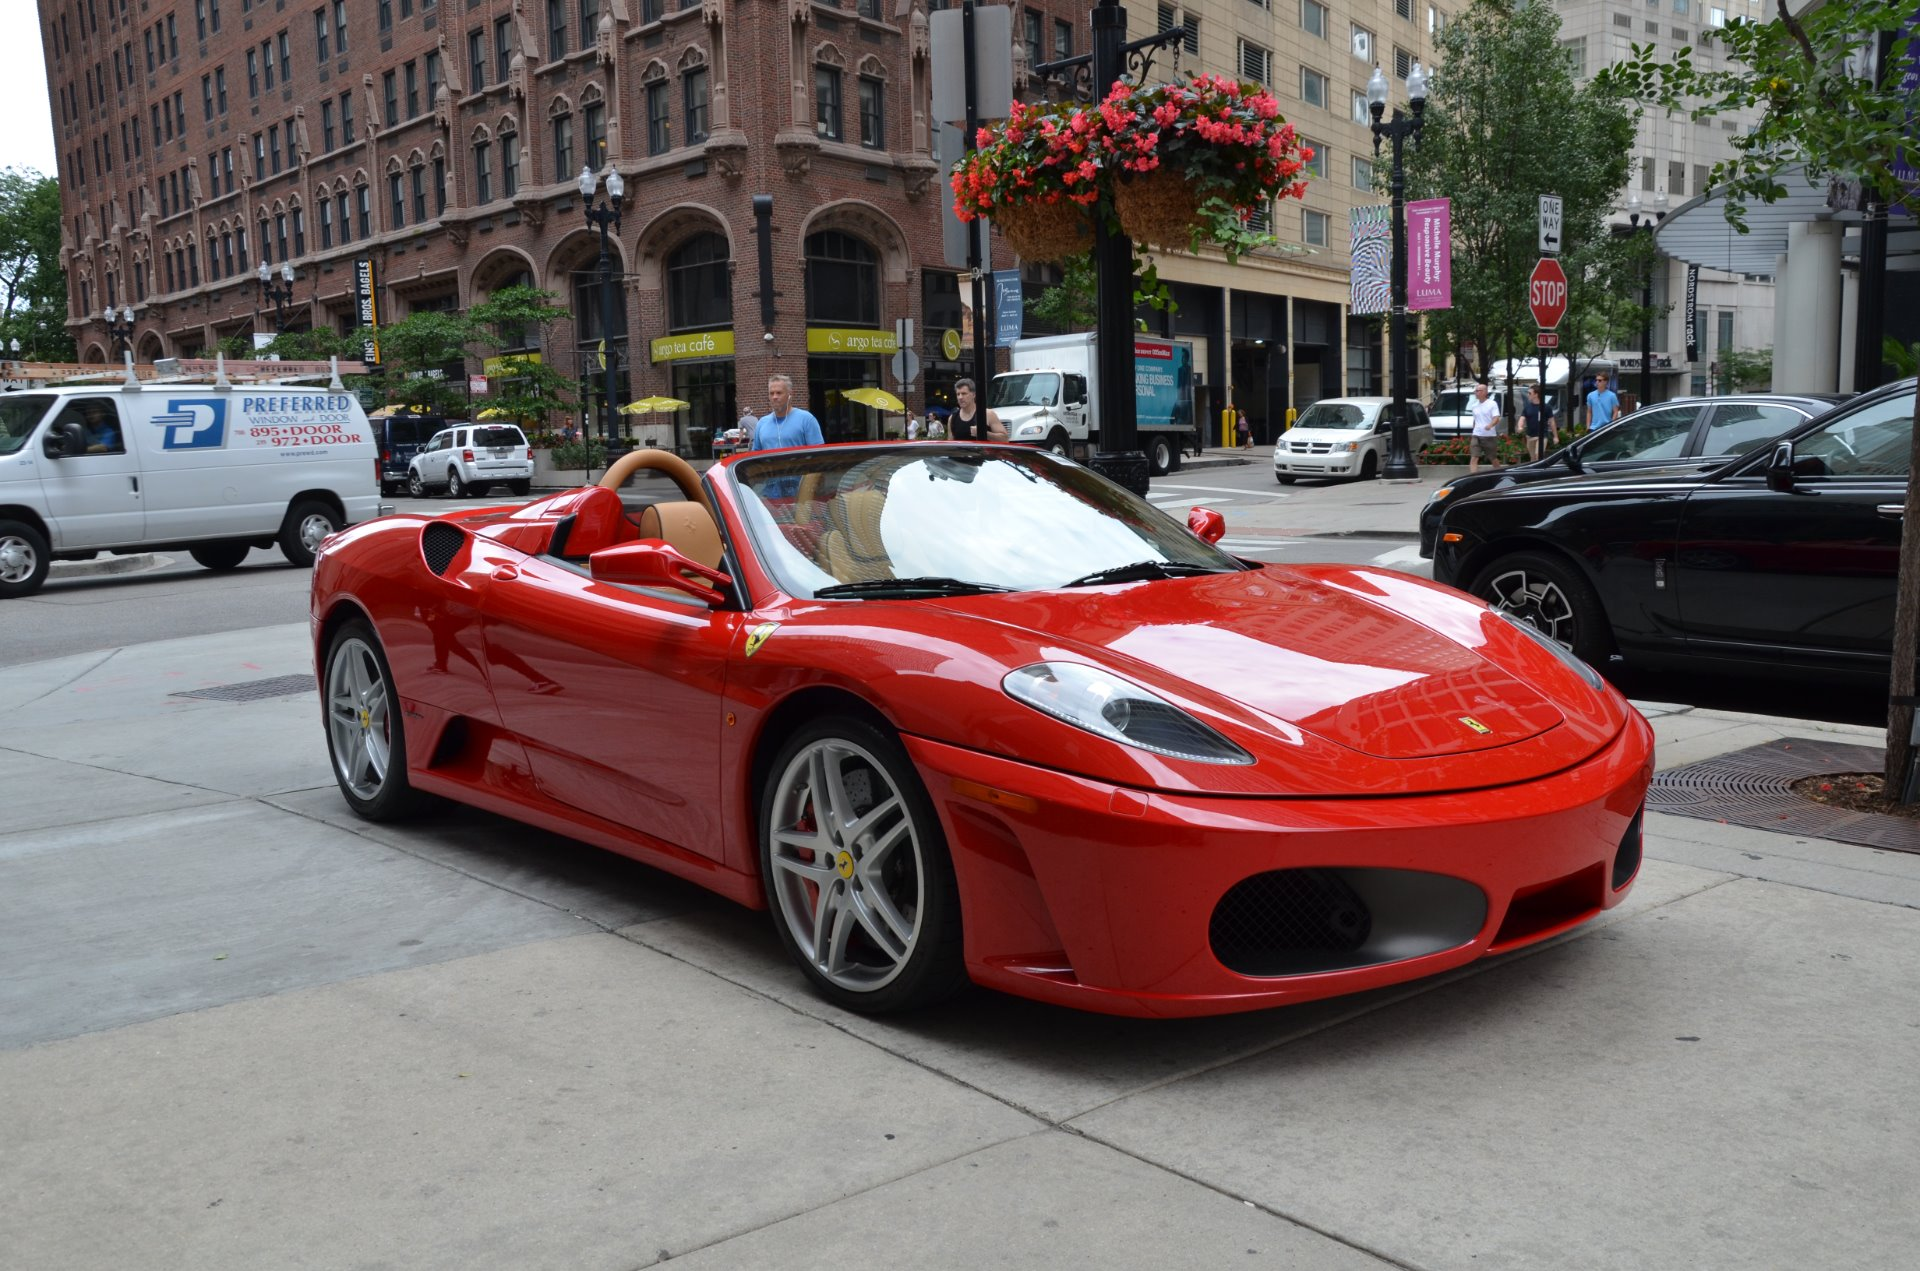 2008 ferrari f430 spider stock b917b for sale near. Black Bedroom Furniture Sets. Home Design Ideas